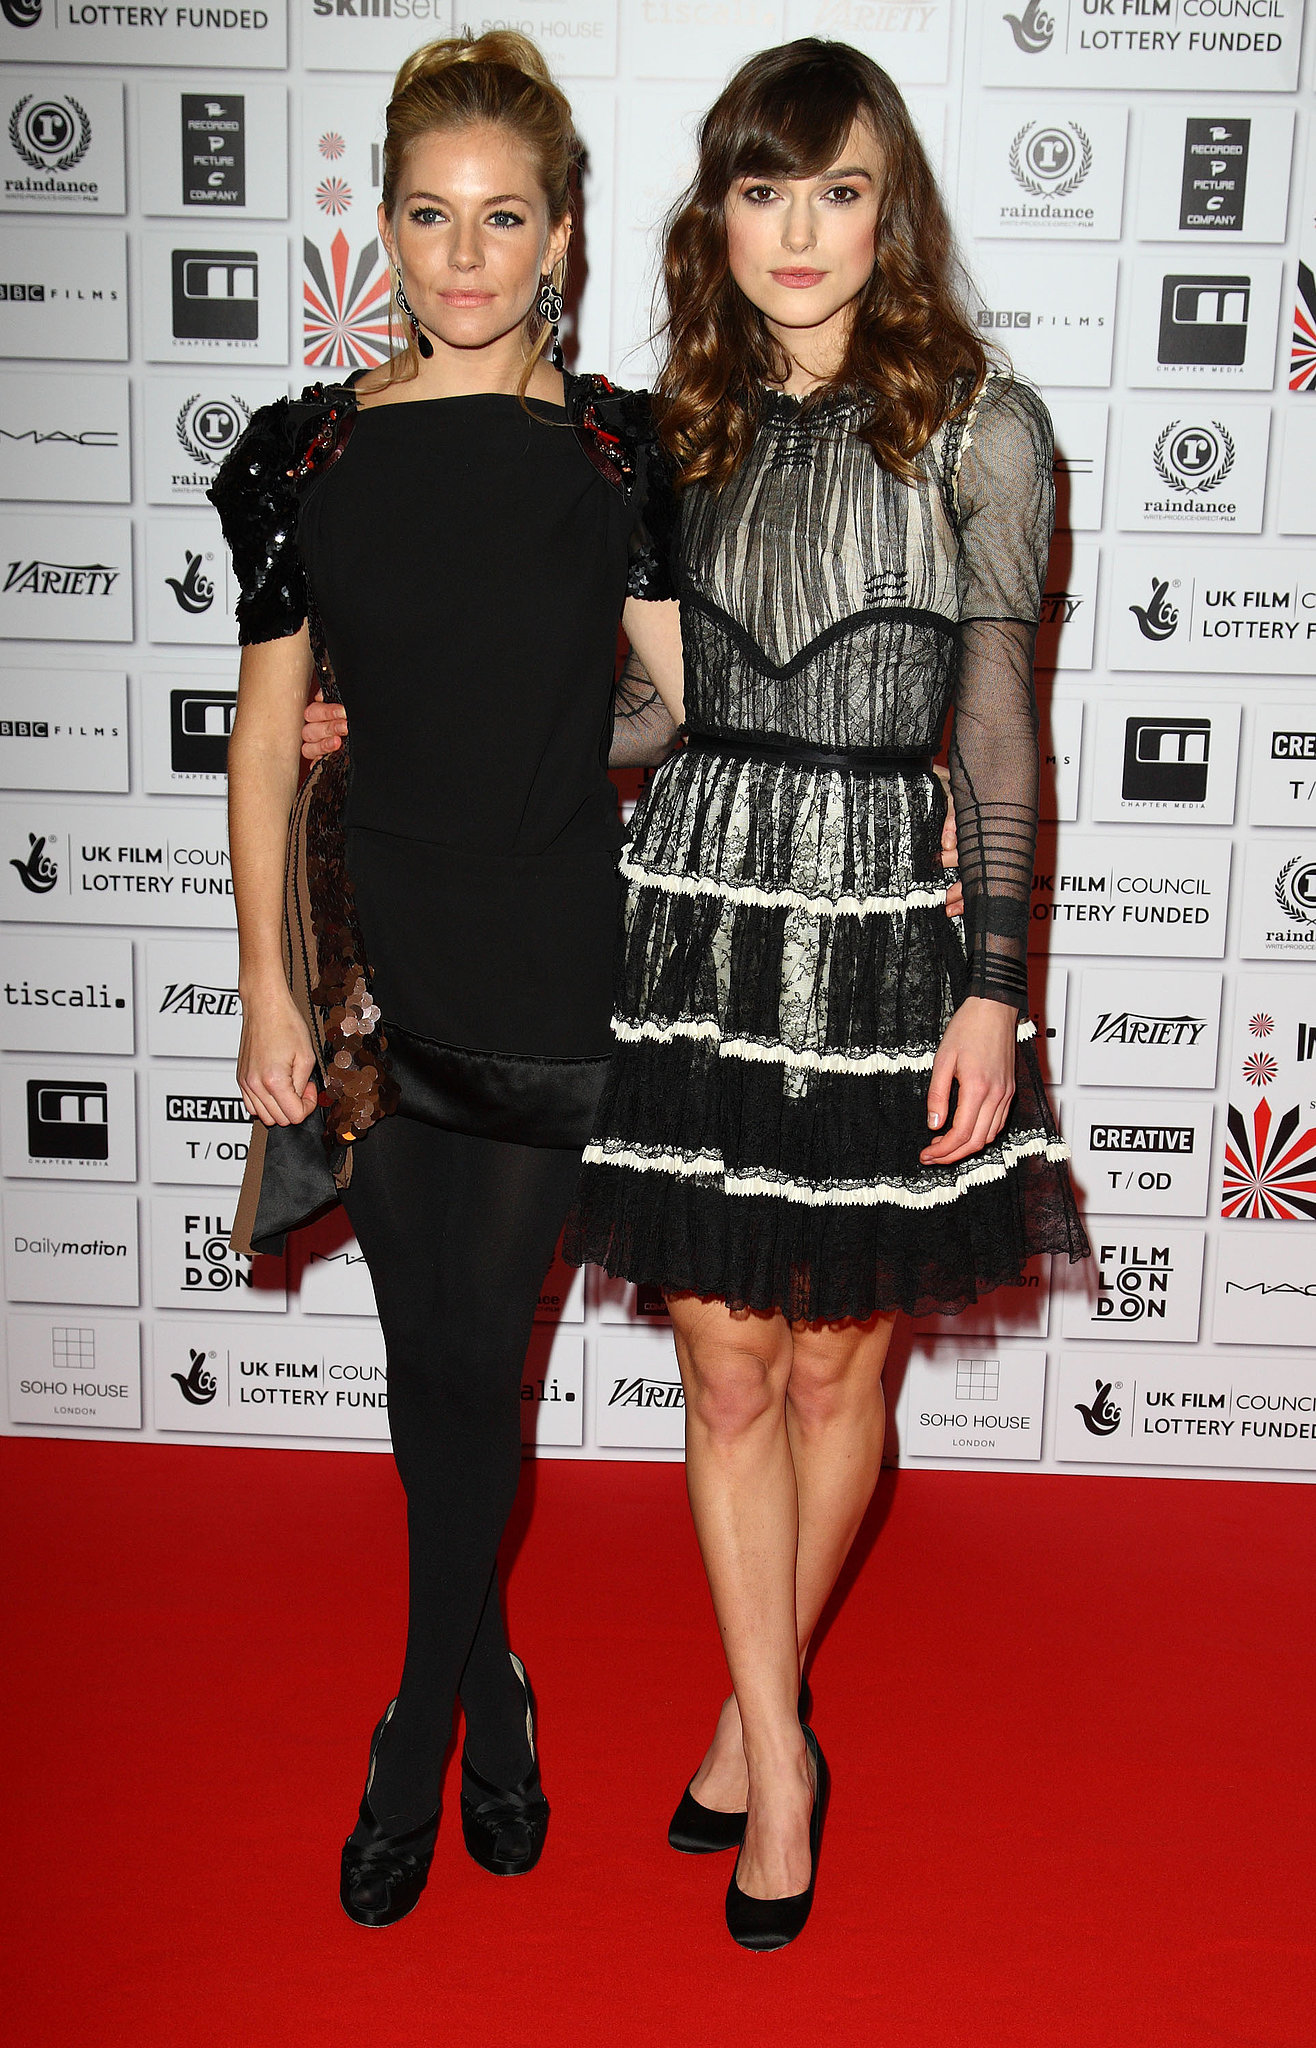 Sienna and Keira Knightley made a pretty pair at the British Independent Film Awards in 2008.